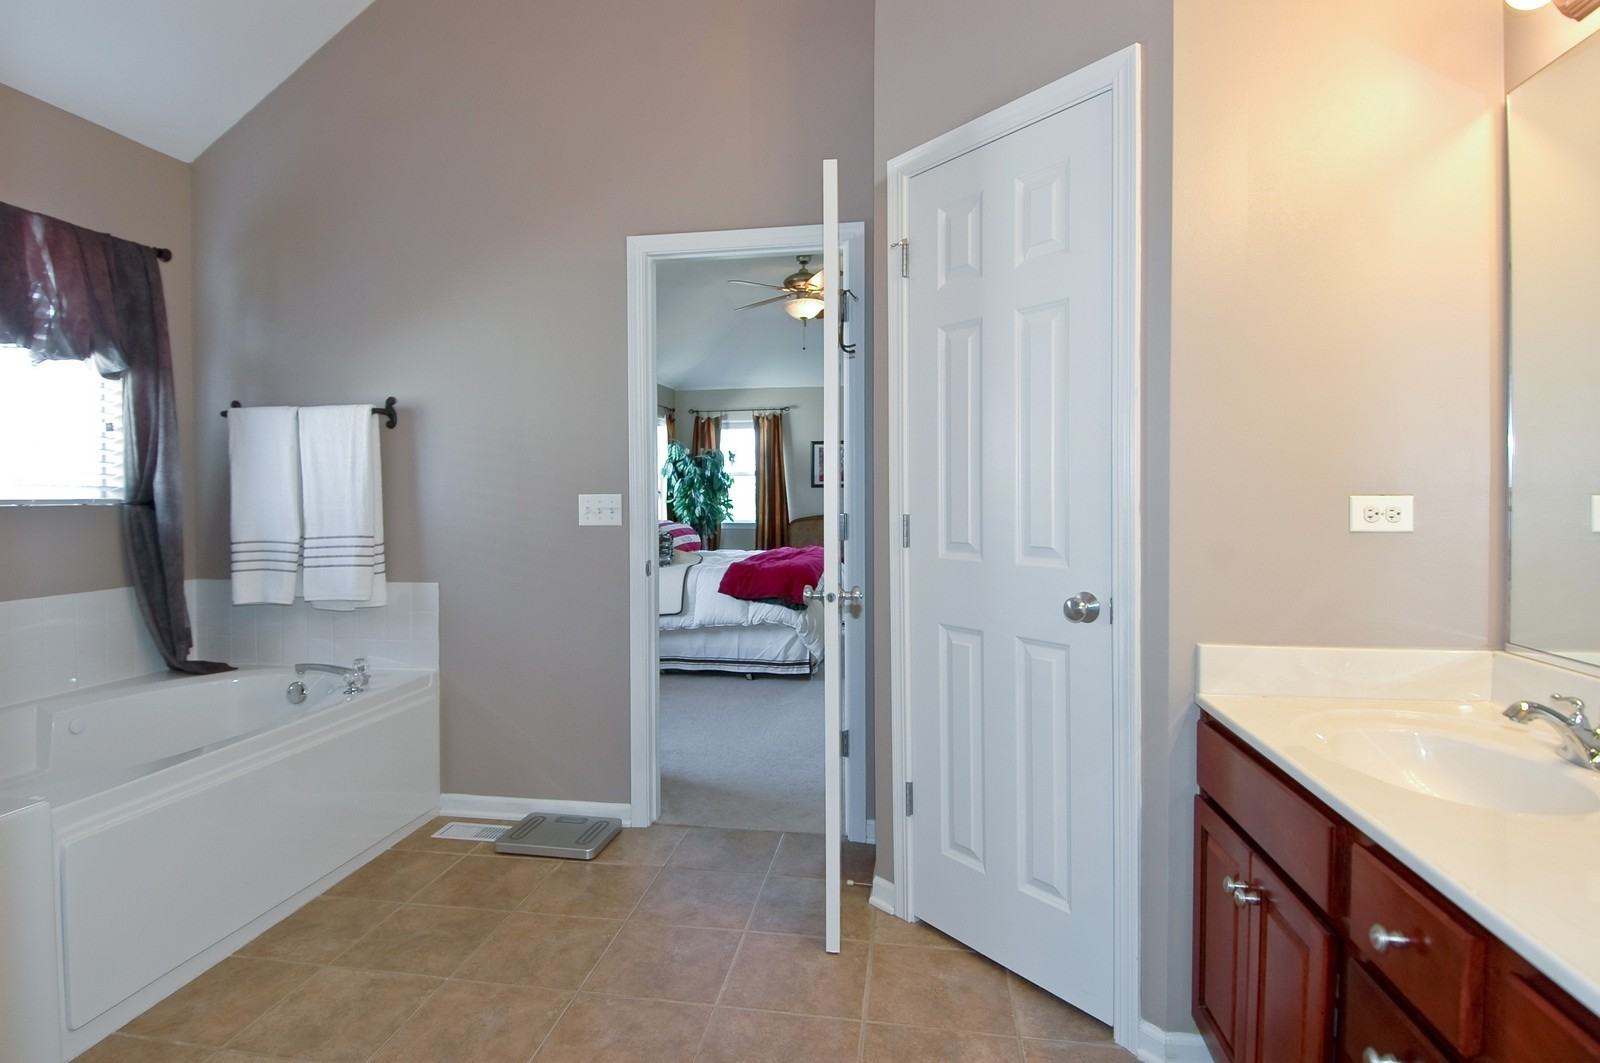 Real Estate Photography - 835 Chasewood Dr, South Elgin, IL, 60177 - Master Bathroom